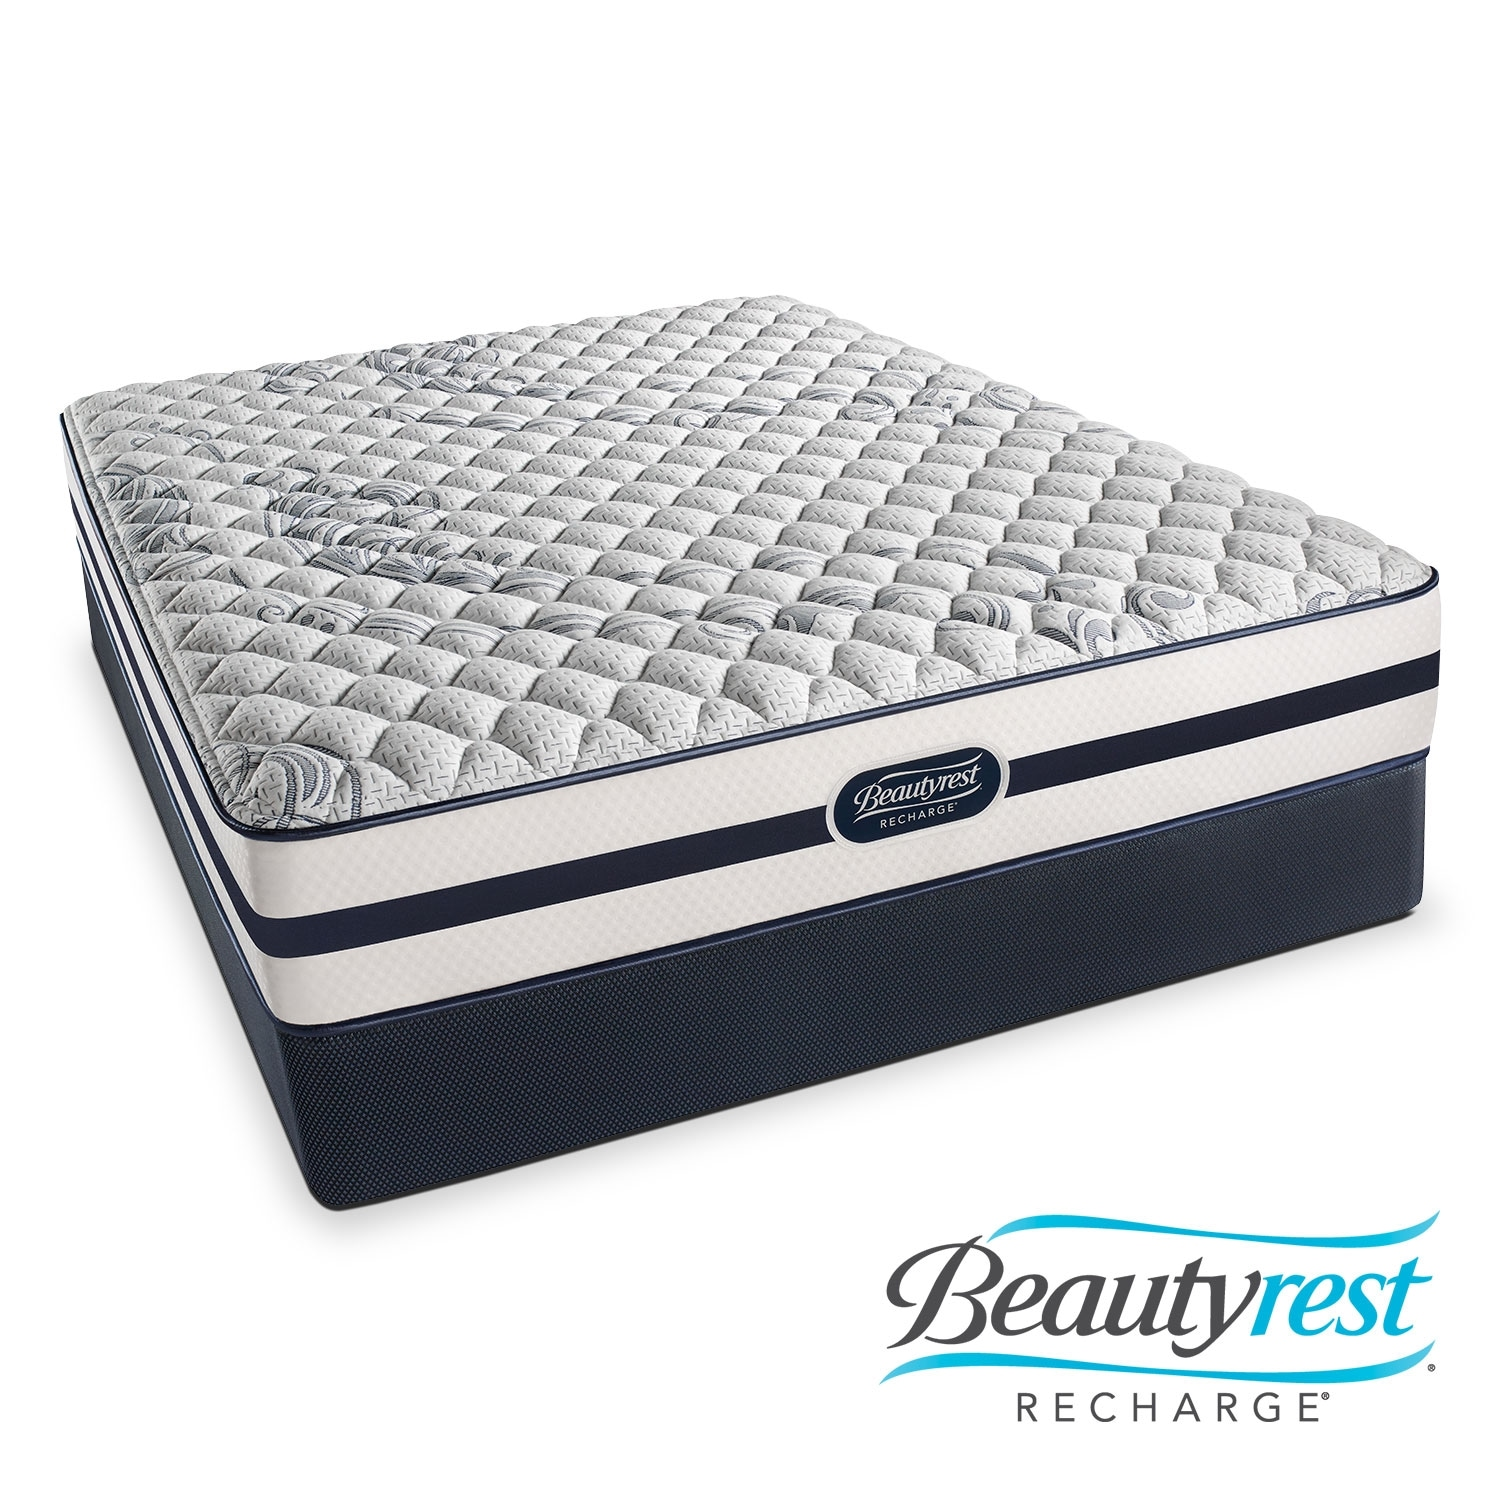 Mattresses and Bedding - Alisa Firm Twin XL Mattress/Foundation Set